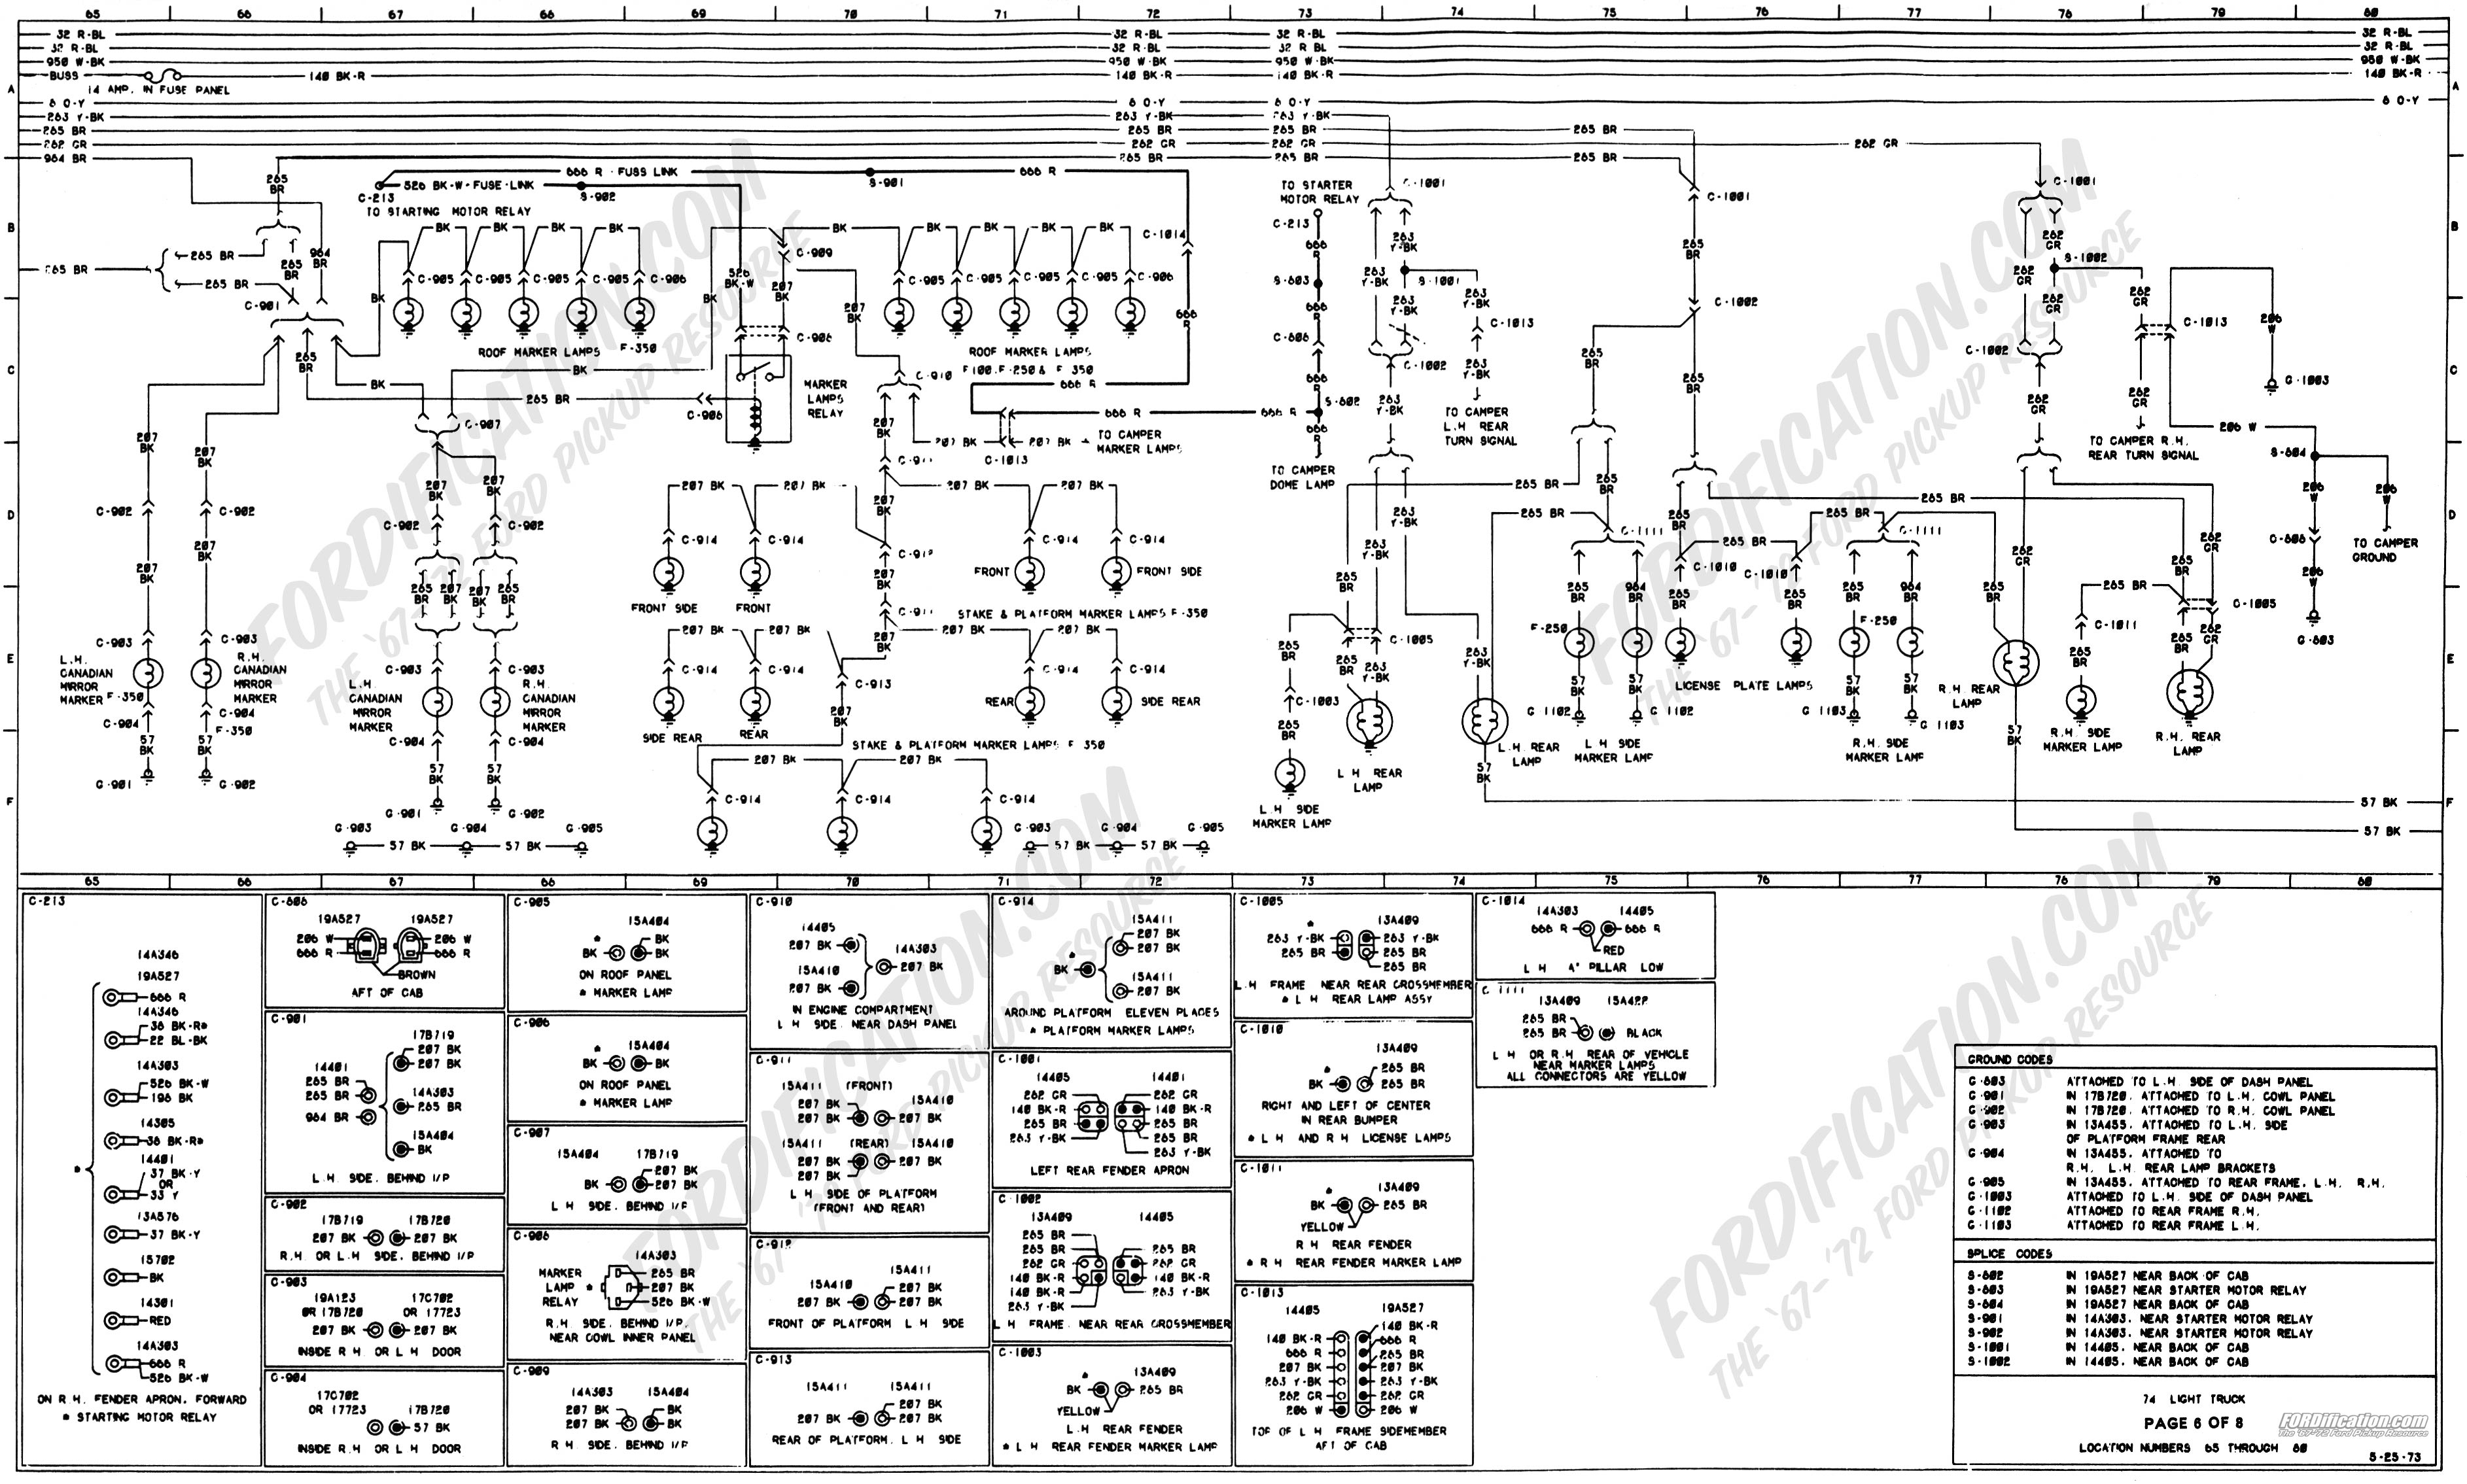 Ford Wiring Diagrams - Data Wiring Diagram Schematic - 2006 Ford Expedition Trailer Wiring Diagram